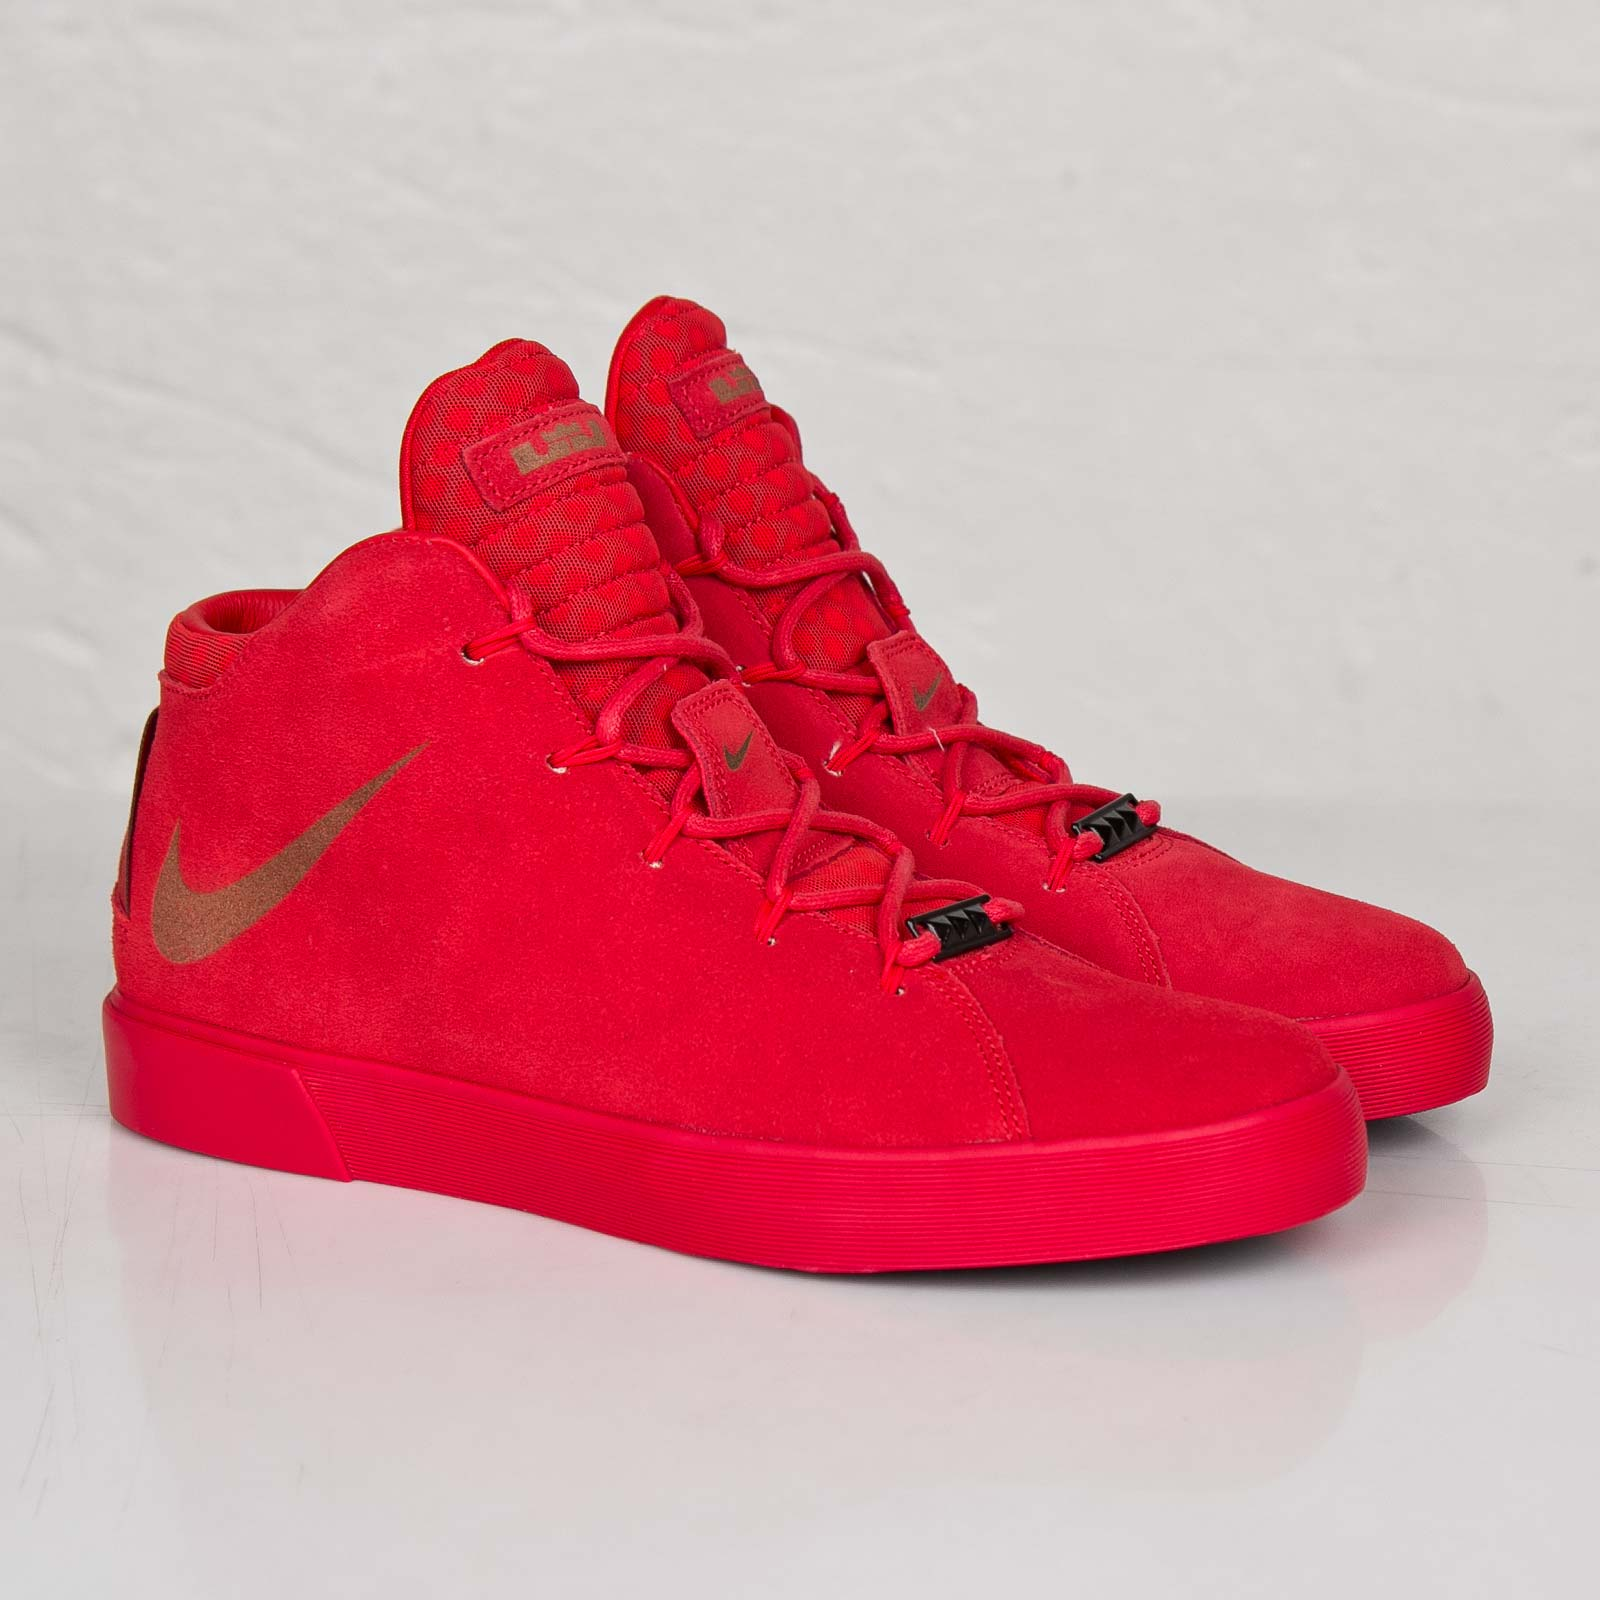 6334a989ed7 ... release date nike lebron xii nsw lifestyle qs 83d0e c1c15